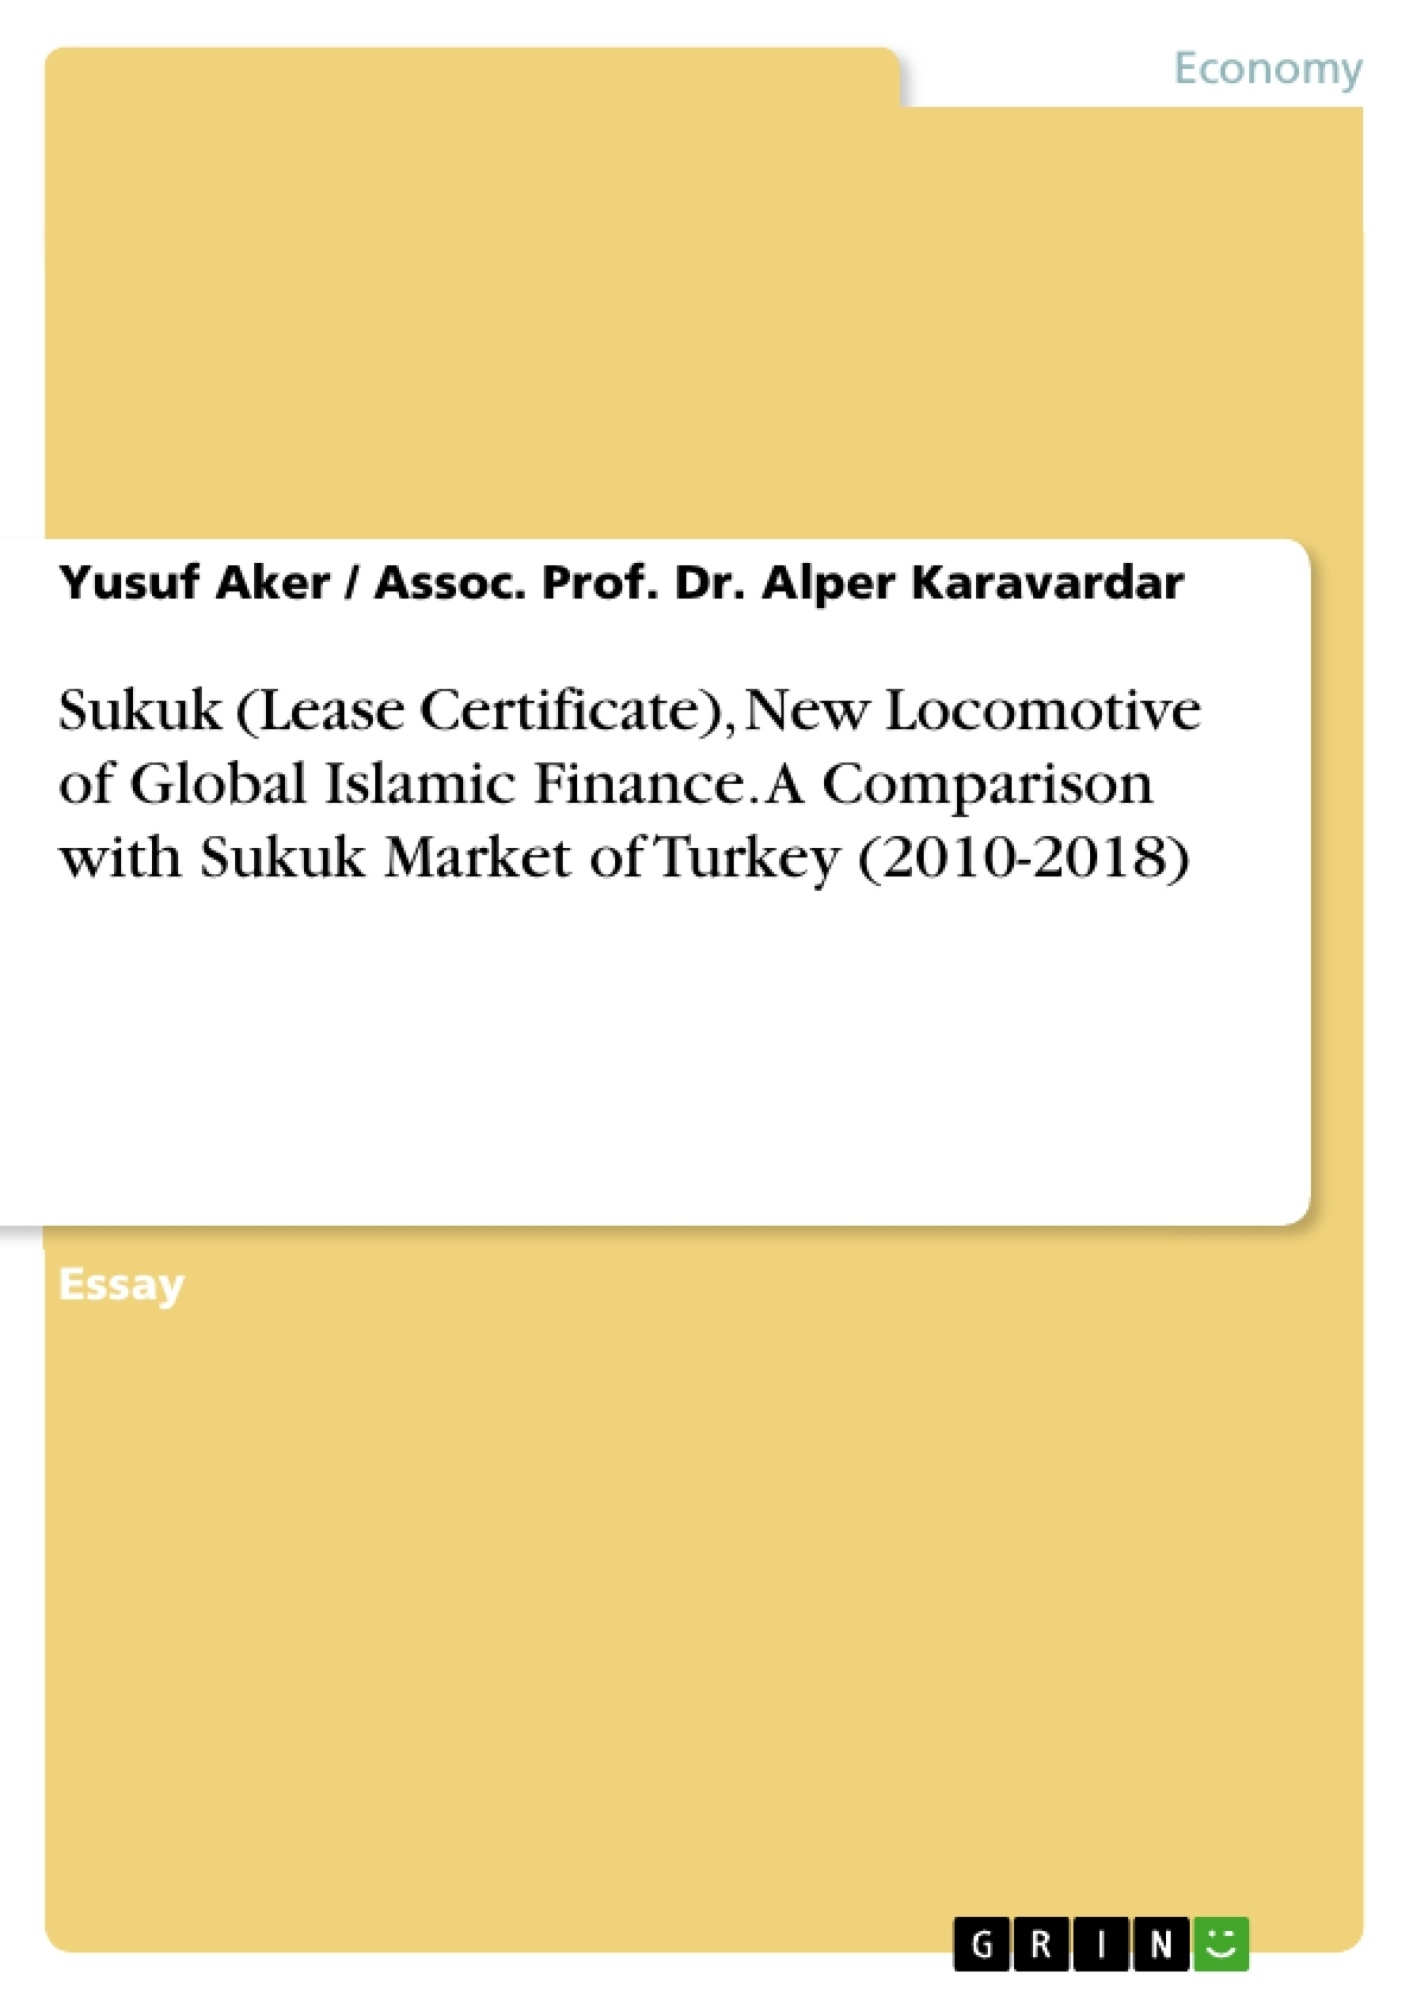 Title: Sukuk (Lease Certificate), New Locomotive of Global Islamic Finance. A Comparison with Sukuk Market of Turkey (2010-2018)